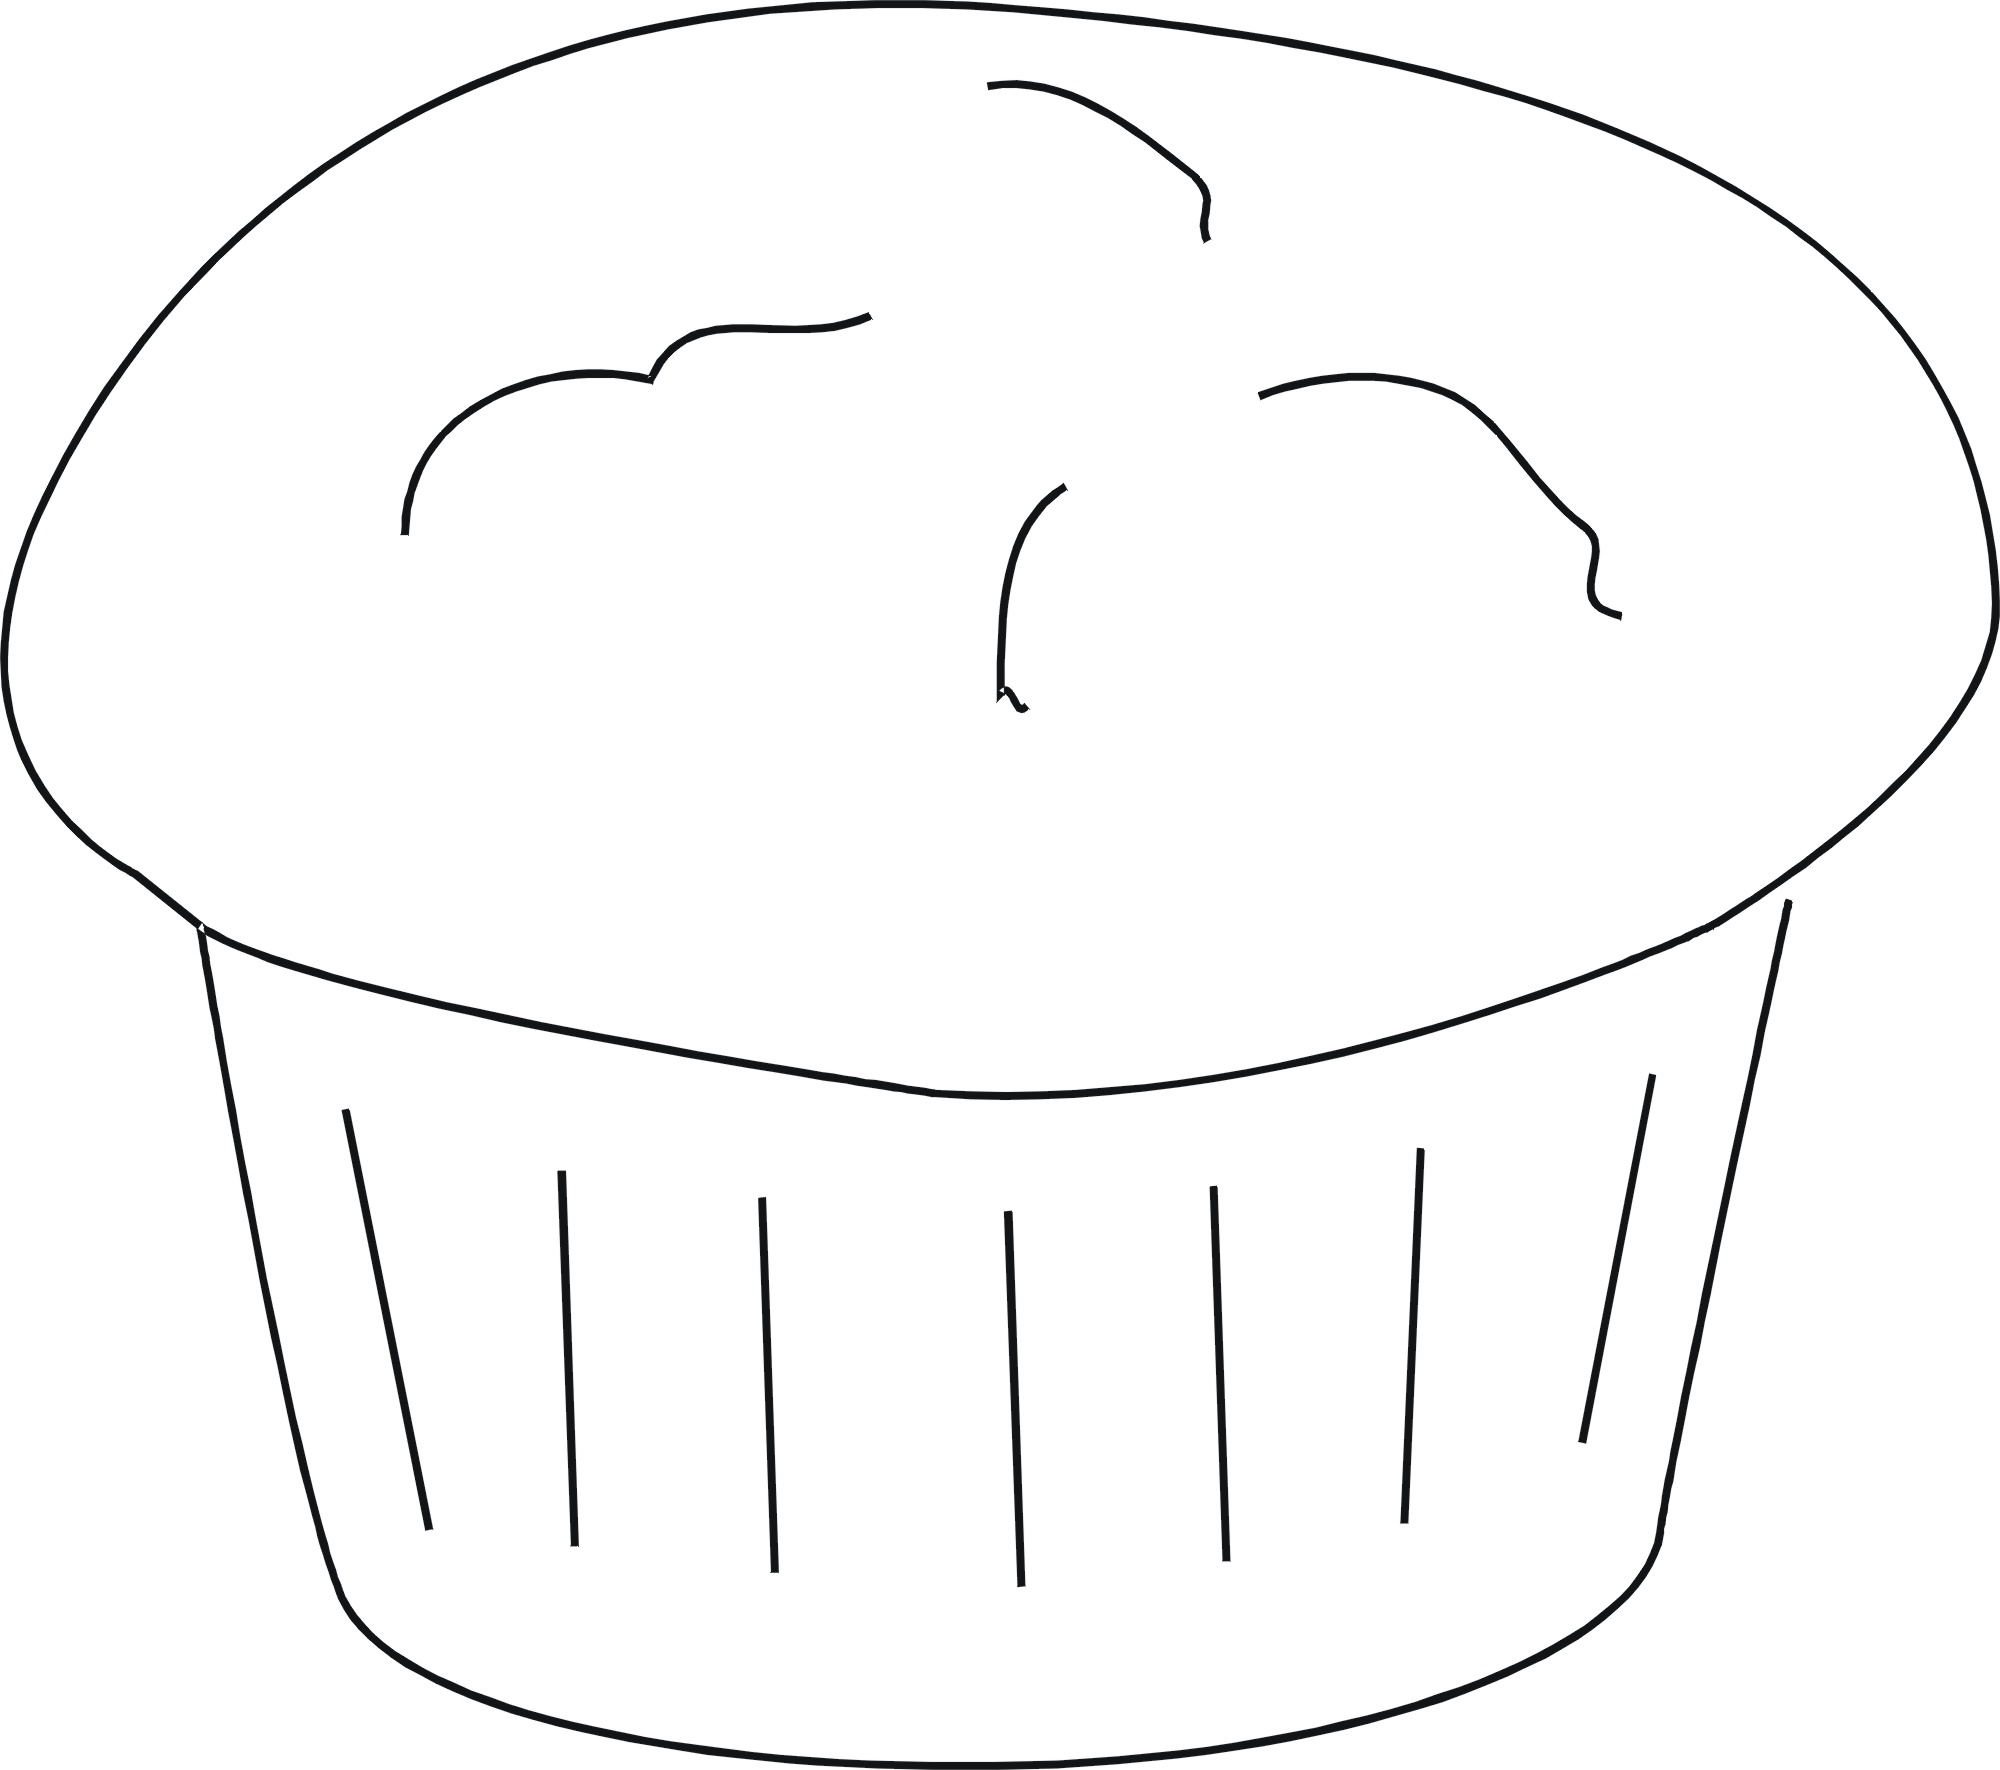 muffin pictures to color how to draw a muffin step by step food pop culture muffin pictures color to